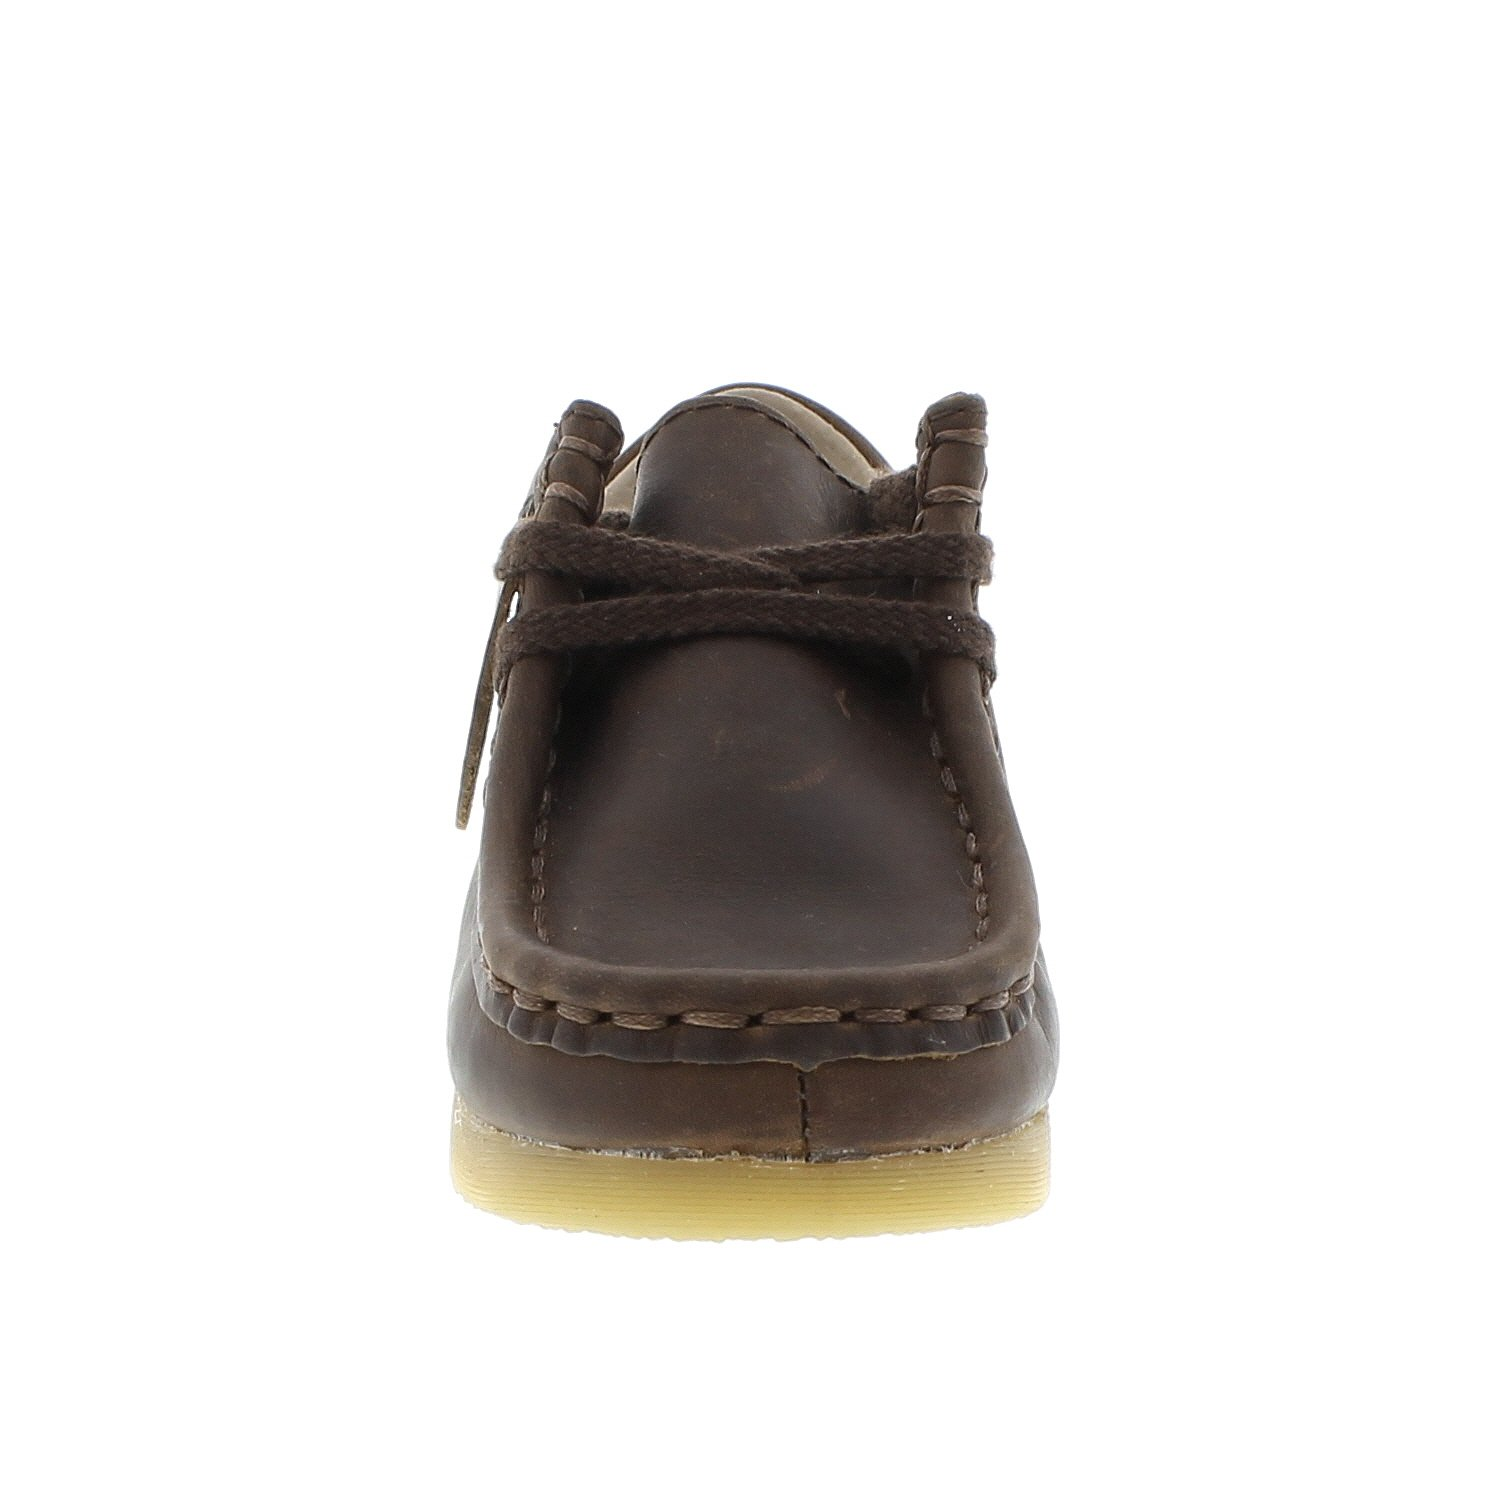 FOOTMATES Wally Low Wallabee Oxford Brown Oiled - 9125/12.5 Little Kid M/W by FOOTMATES (Image #4)